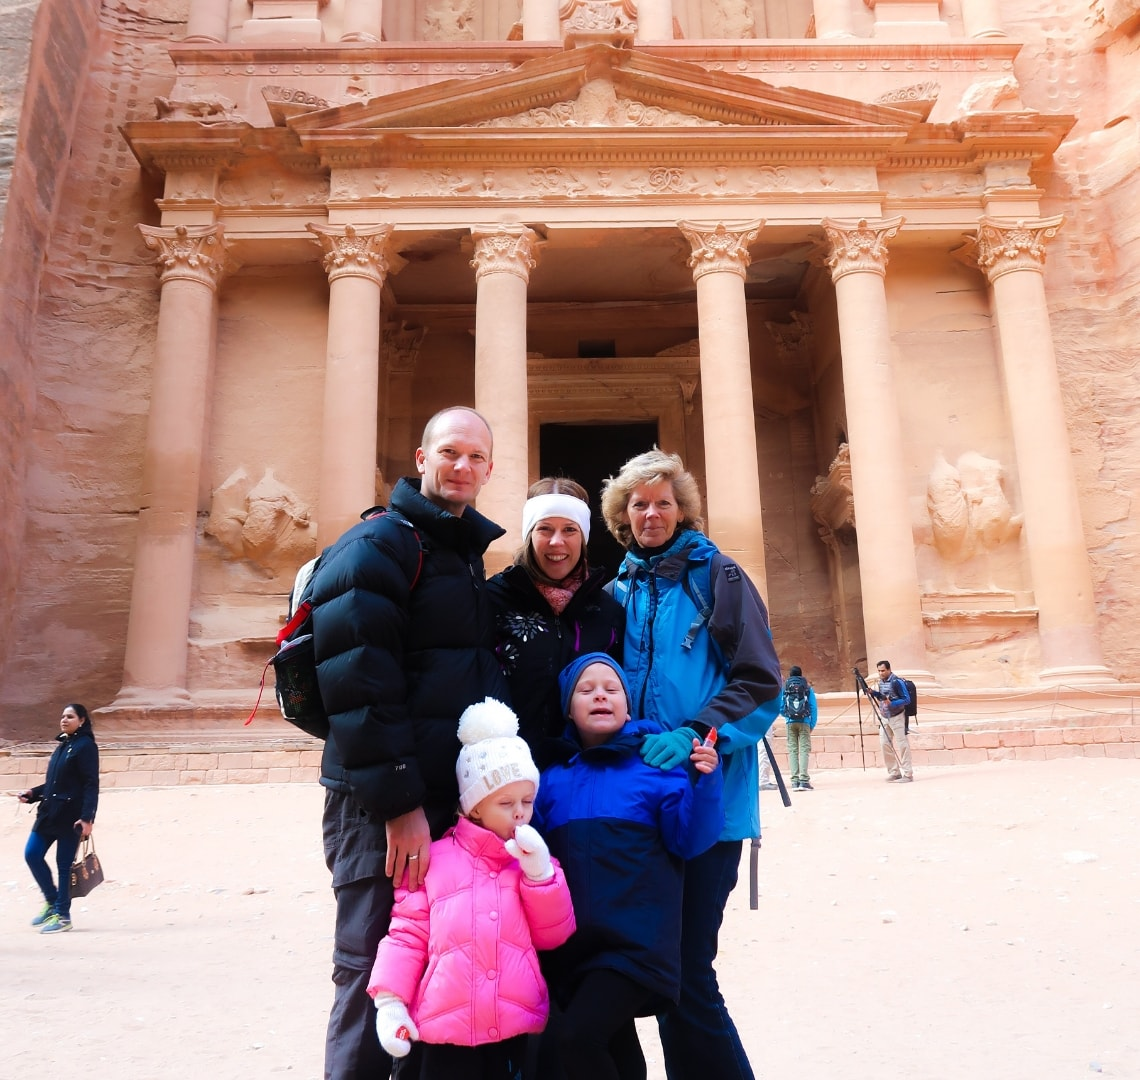 Normal Expat Christmas - Wanderlust family photon front of the Treasury in Petra, Jordan